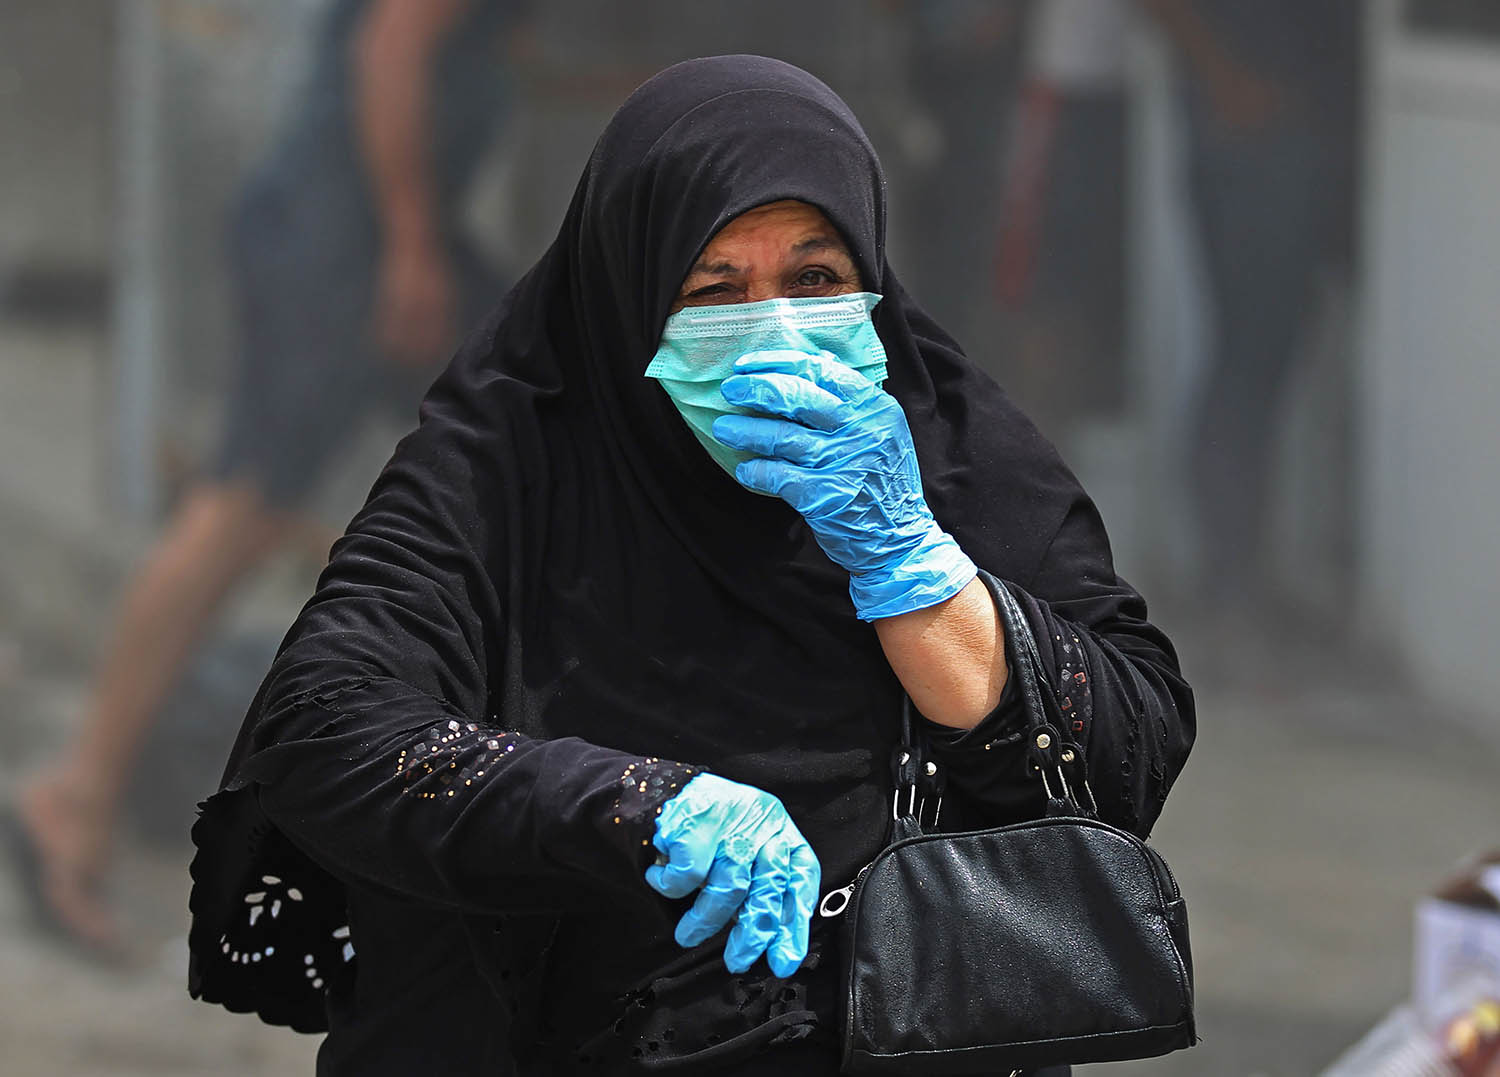 An Iraqi woman wearing protective gloves and mask walks by on a street in the Washash district, in western Baghdad, on April 6, during a disinfection campaign of the neighborhood to stem the spread of the novel coronavirus.